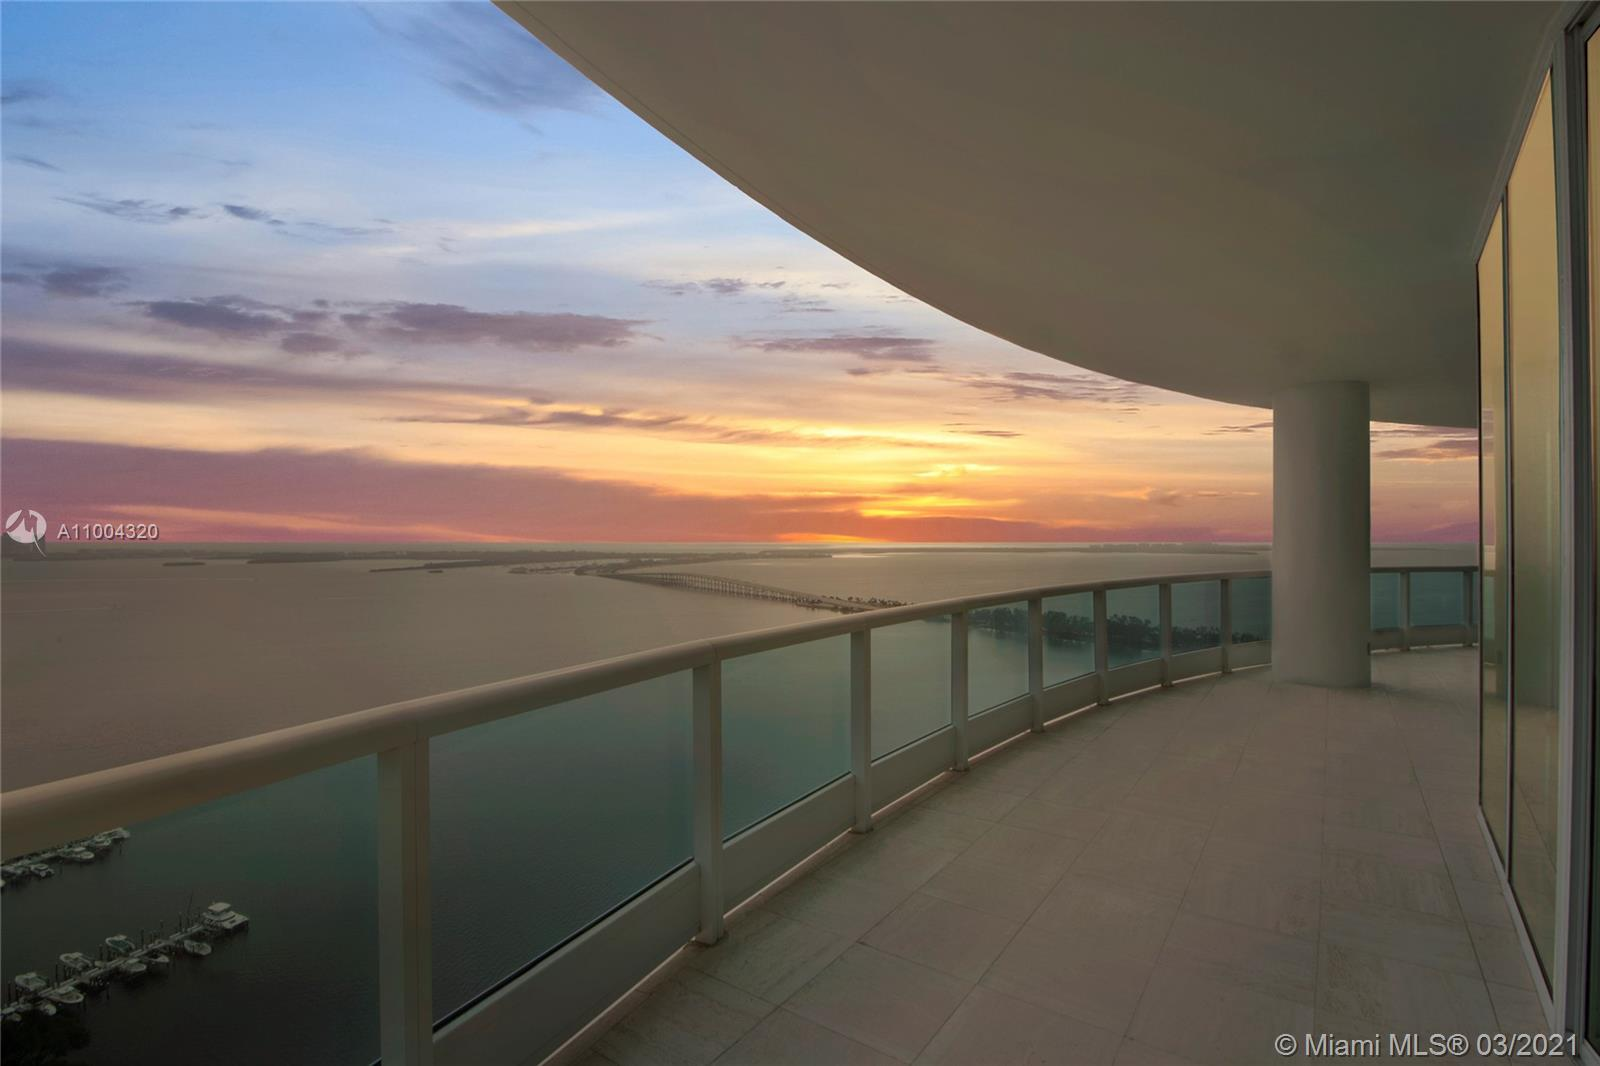 Here is your chance to own the sub-penthouse at the prestigious full-service, Bristol Tower. The absolutely gorgeous unit, boasts one of the most breathtaking views in all of South Florida. This large spacious unit has 4 beds, 4.5 baths, all in suite bathrooms, two master bathrooms, an office, laundry, private elevator, entry foyer, 3 assigned garage parking, unlimited valet parking & 2 storage units. Total SF of the unit including living & 2 substantial balconies is 5,935 SF. Amenities include Tennis, Gym, Kids Pay Area, Swimming Pool, Gym/Spa, 24hr Doorman Security, and more. This unit has to be seen to be believed.